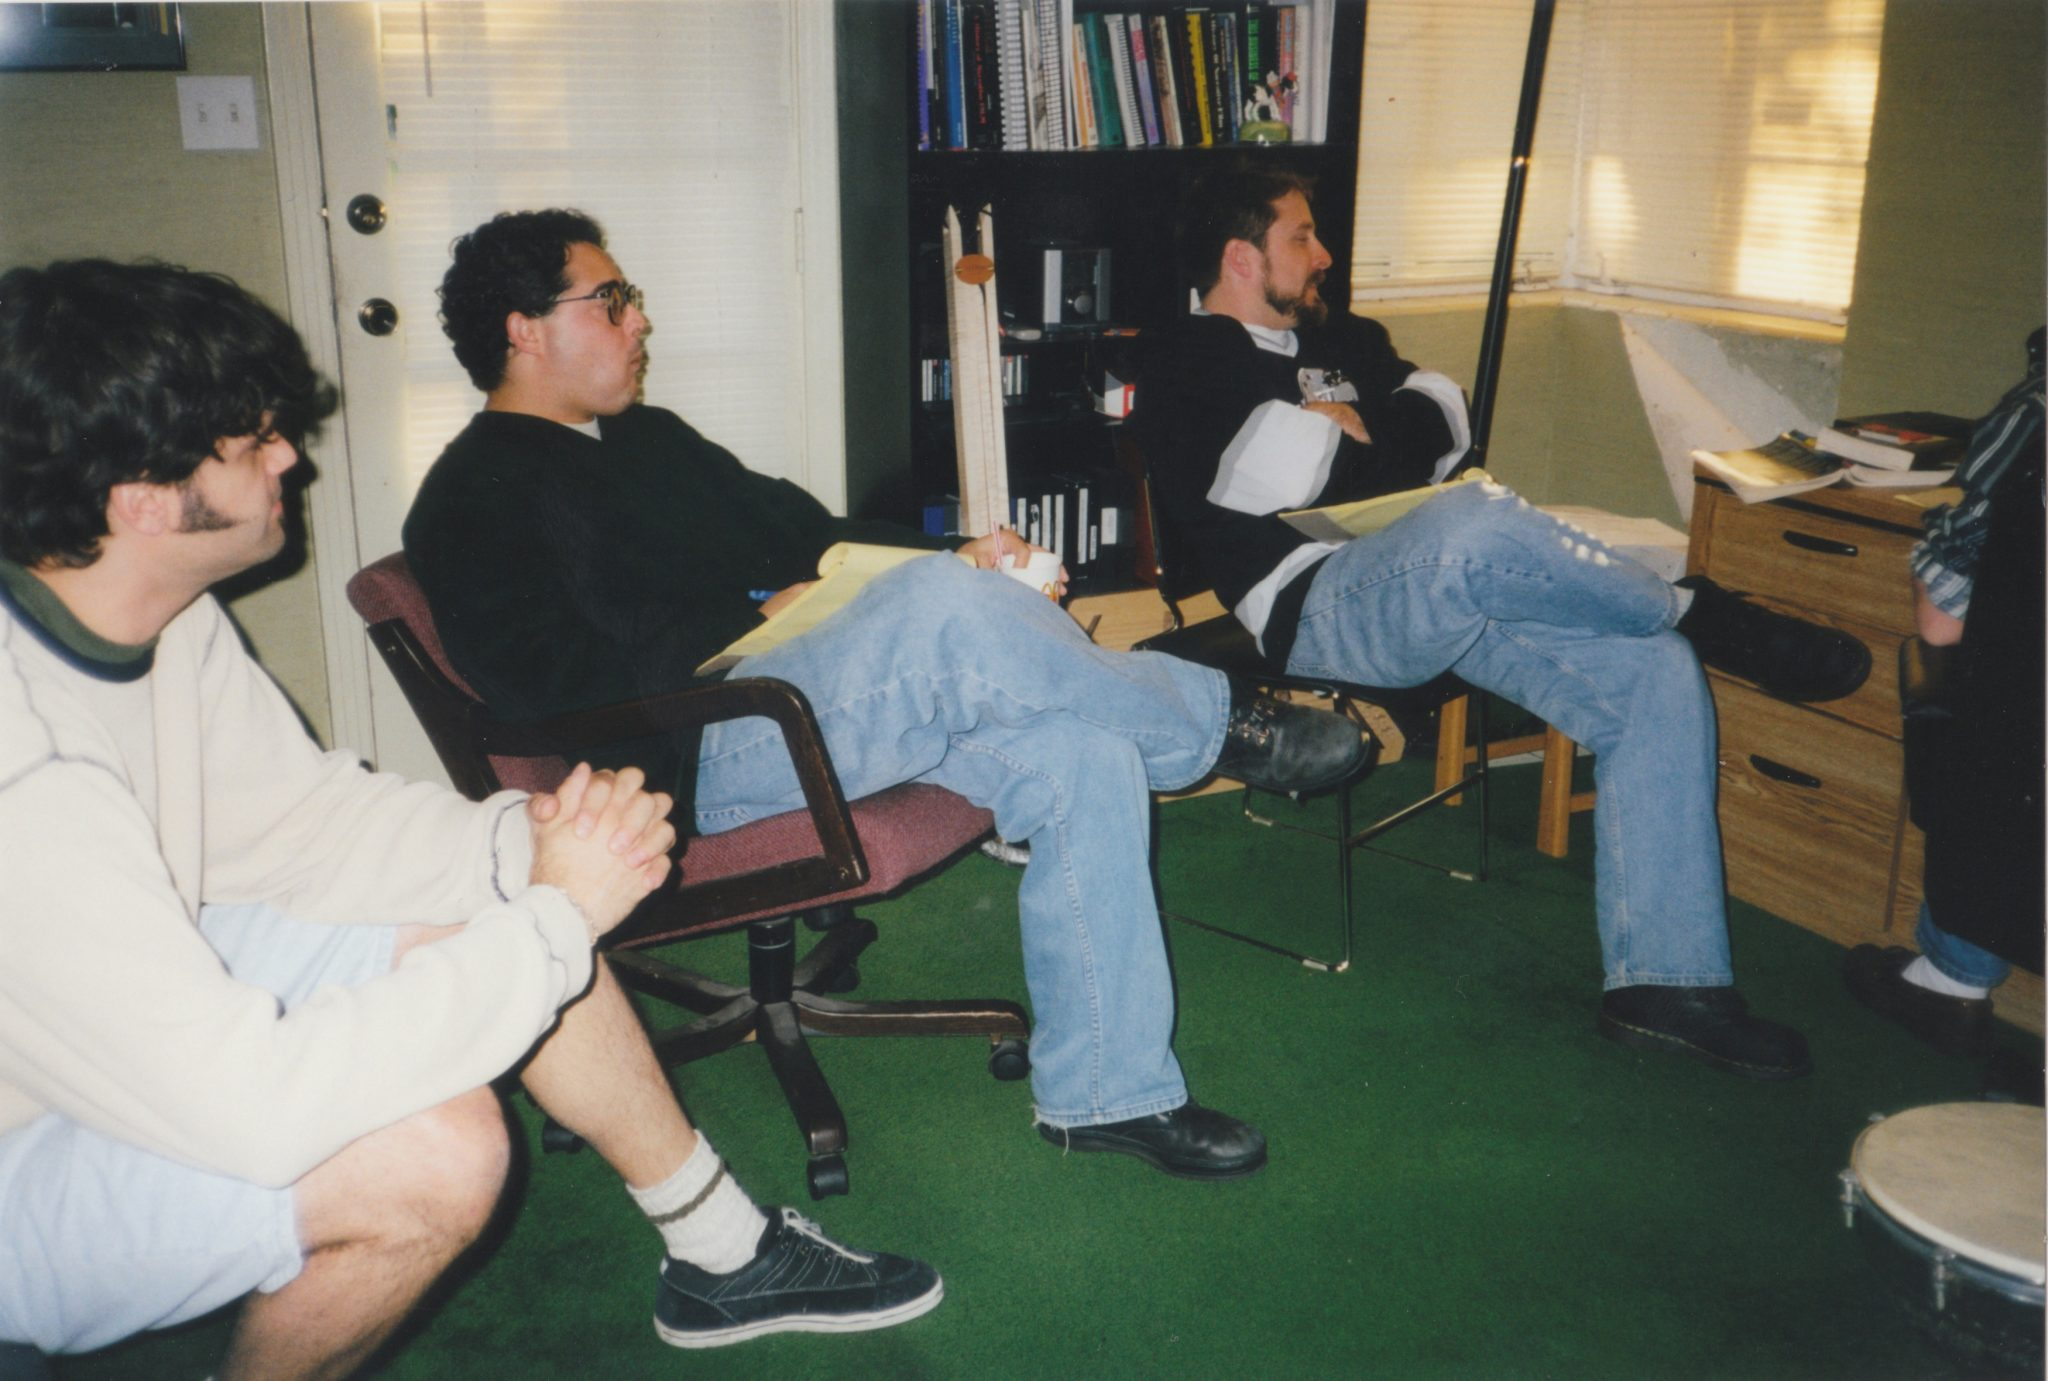 The Haxan offices on Robinson Street in Orlando. Left to right: Ed, Mike, Gregg, and presumably Dan's foot. Photo by Stefanie Sanchez